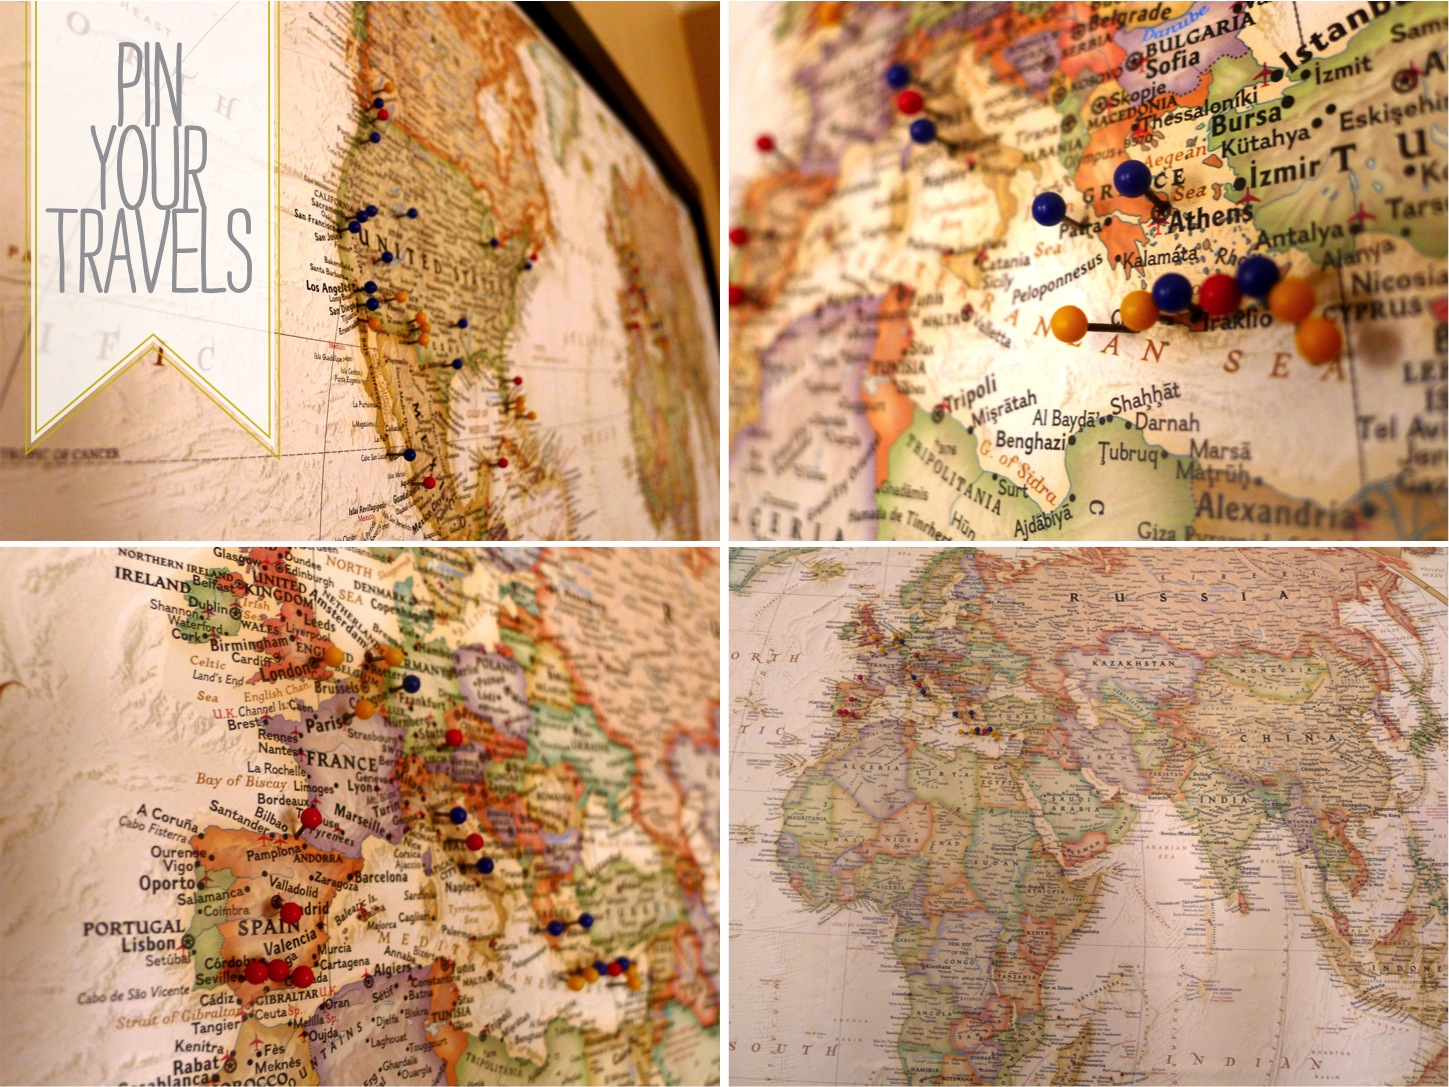 Travel Map Pins – Travel Maps With Pins